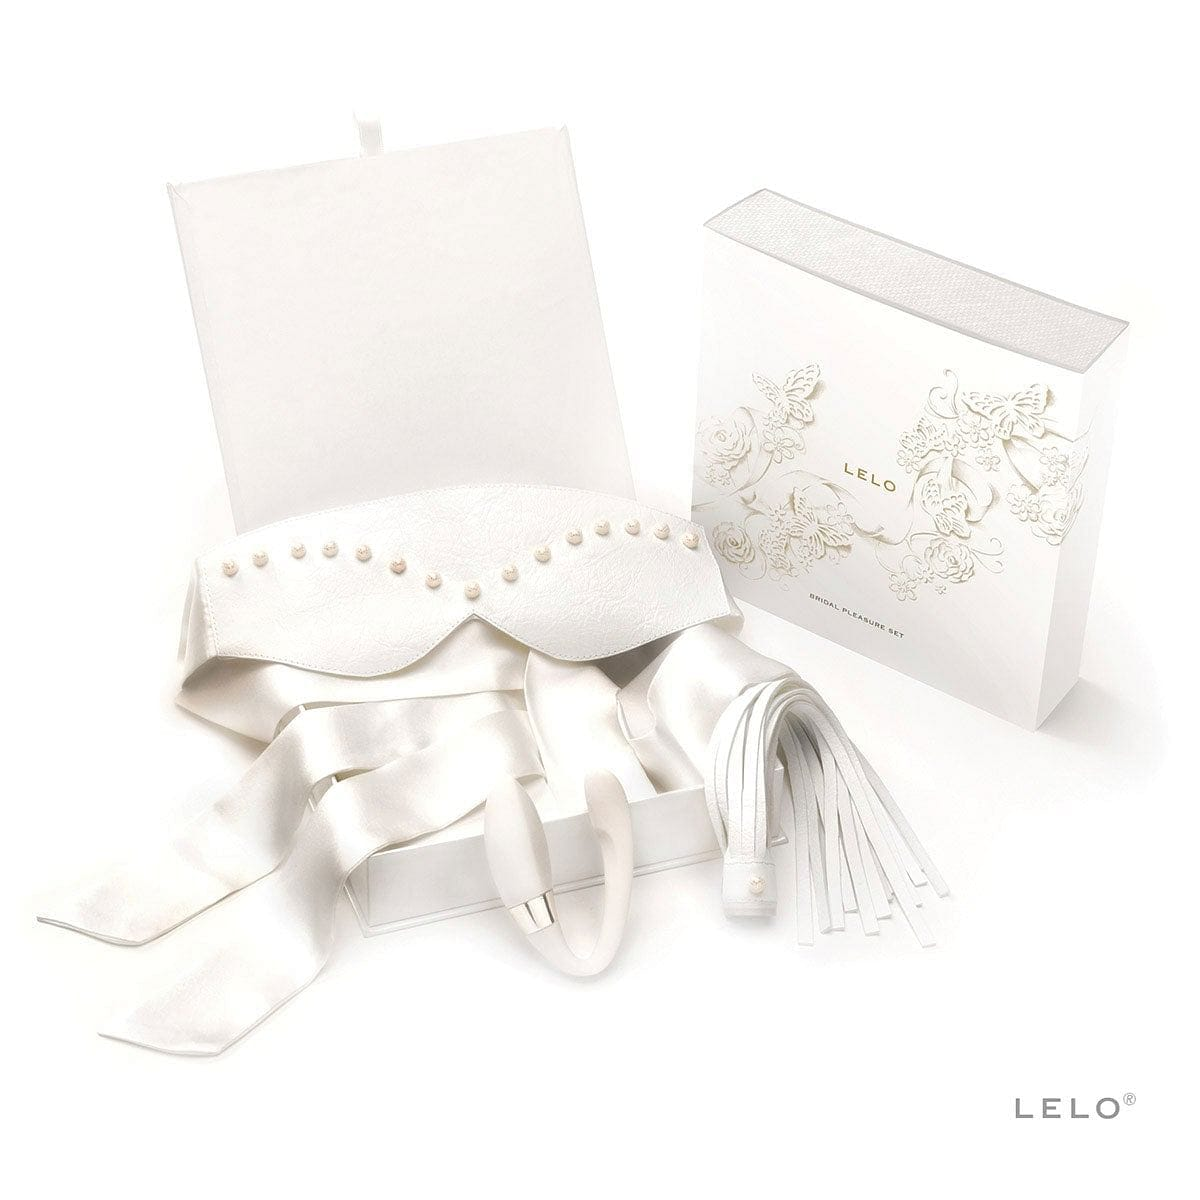 Bridal Pleasure Set by LELO - rolik